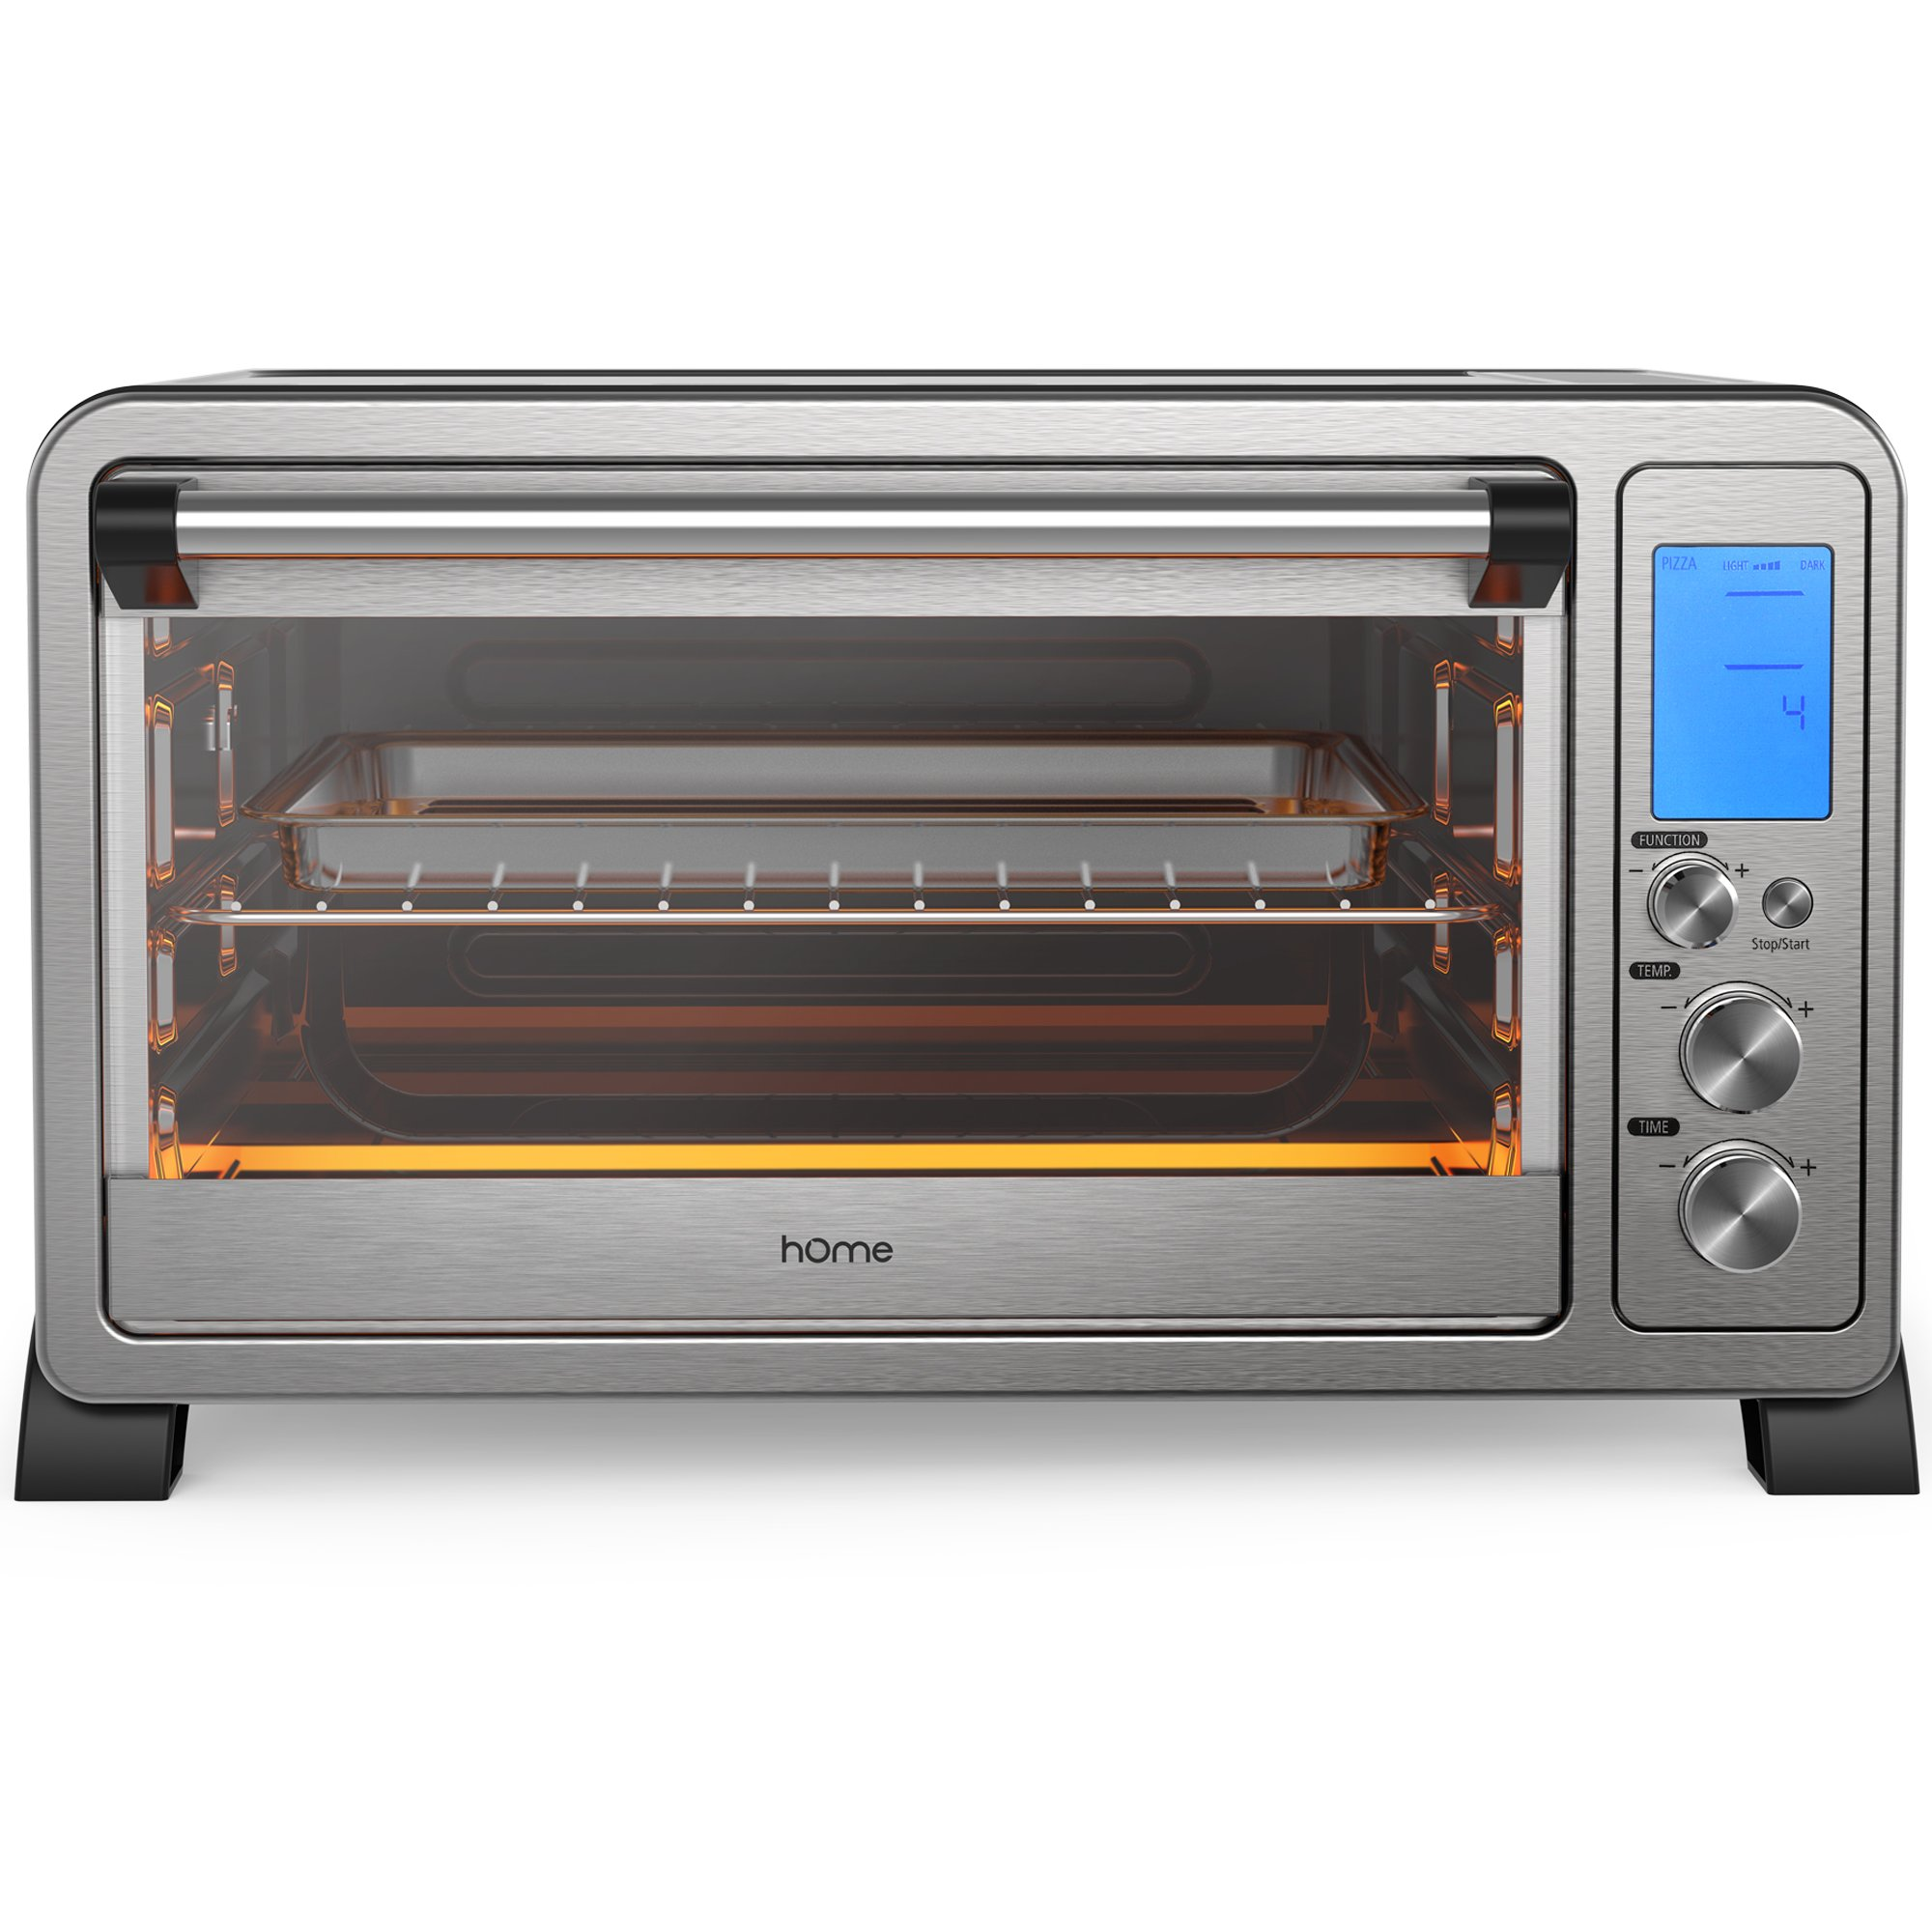 hOmeLabs 6 Slice Convection Toaster Oven - Stainless Steel Countertop Toaster for 12 Inch Pizza with Bakeware Pan Broiler Rack and Rotisserie Accessories - 10 Cooking Functions and Digital Display